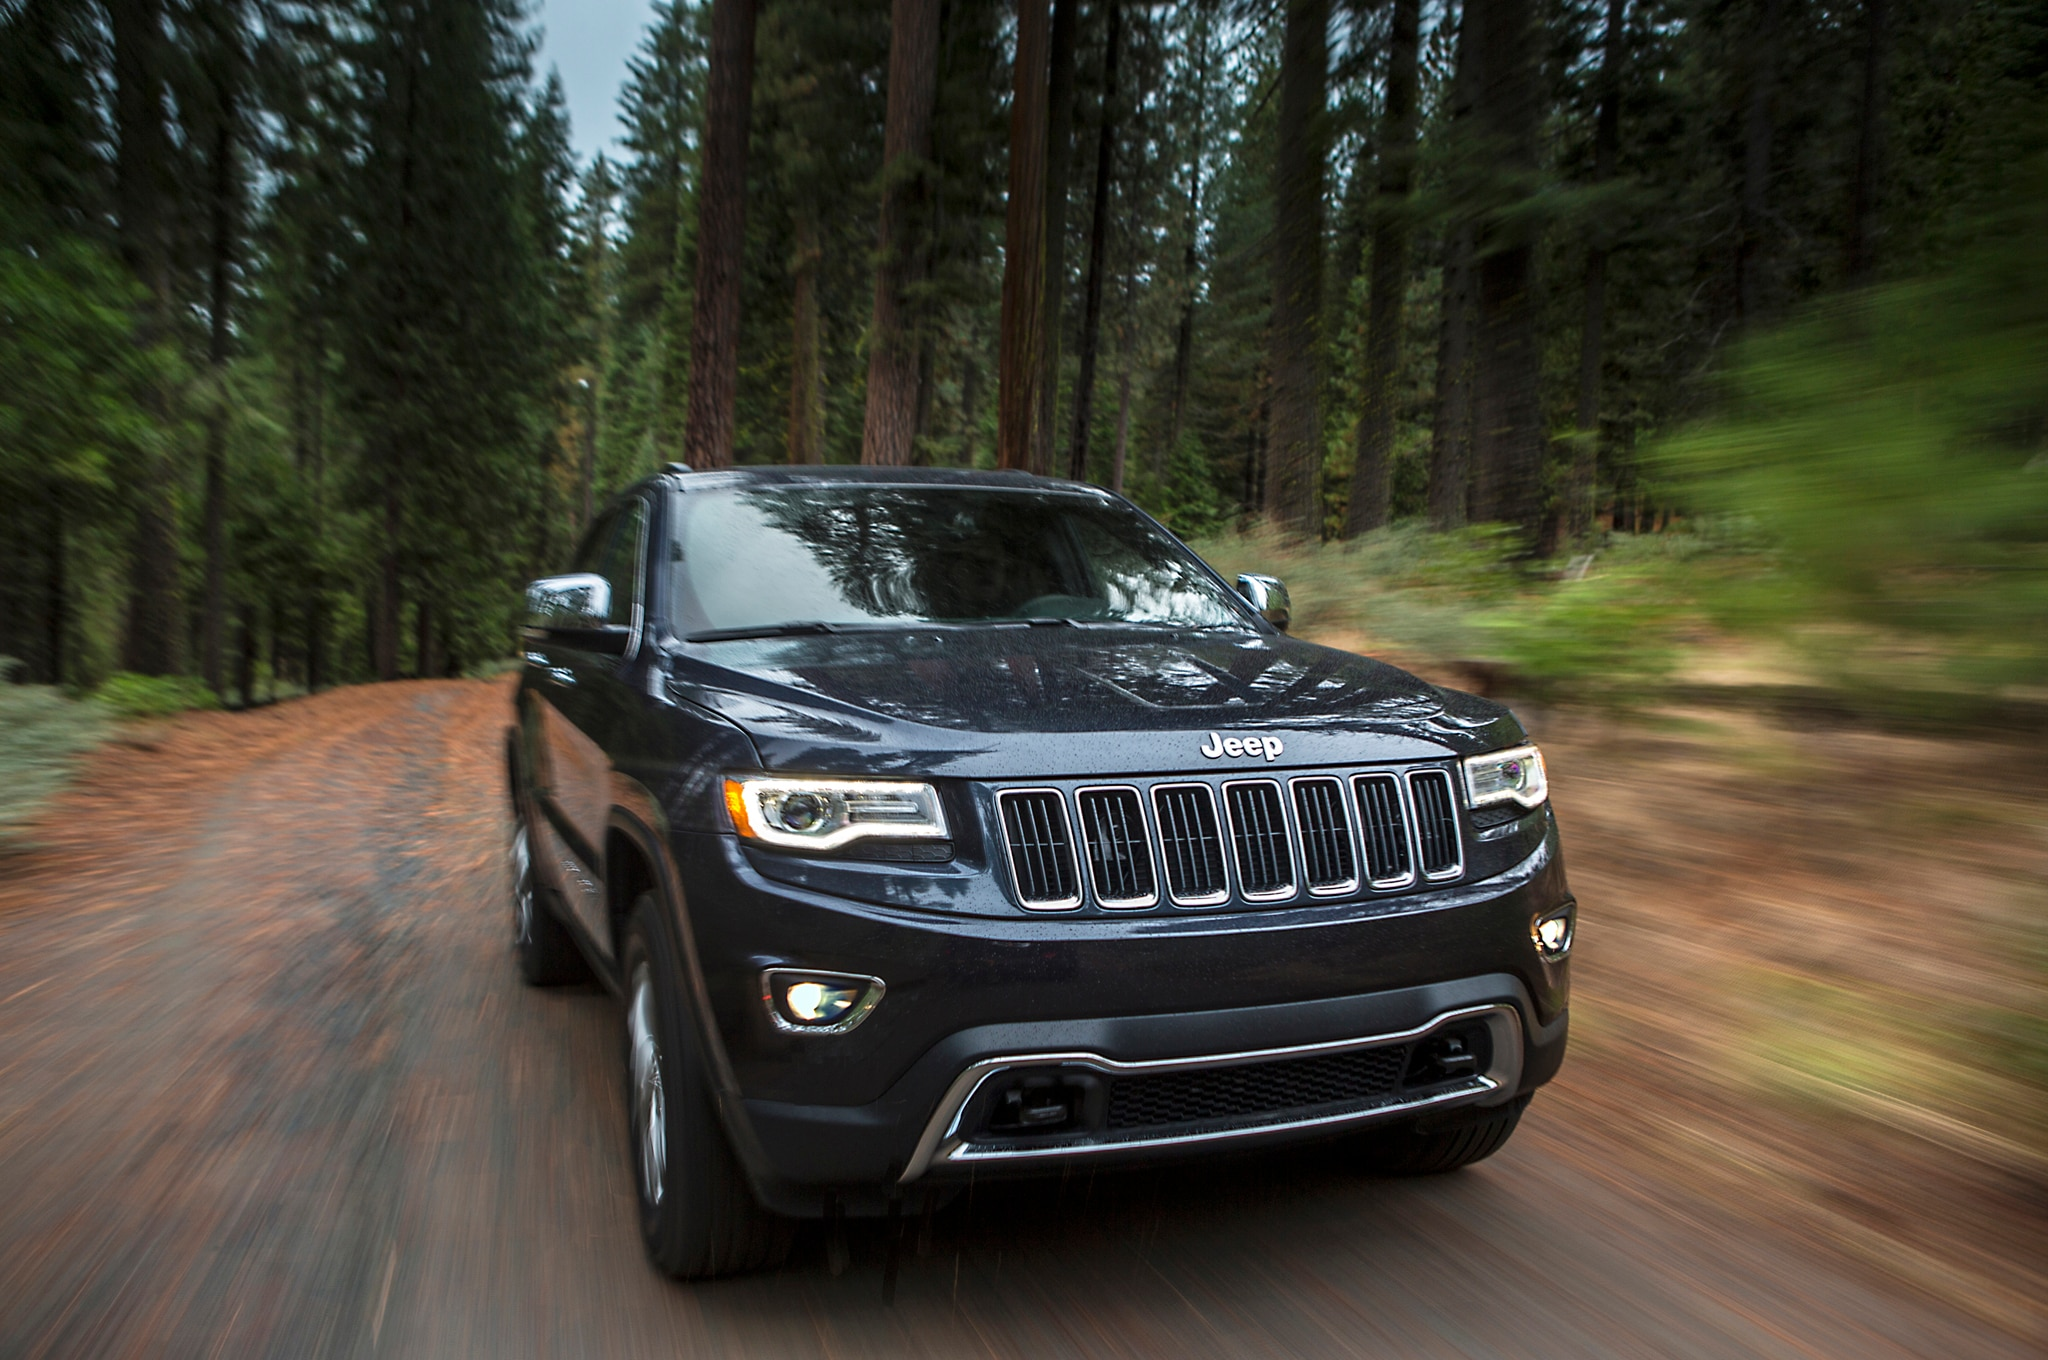 2014 Jeep Grand Cherokee Limited Front Three Quarter1